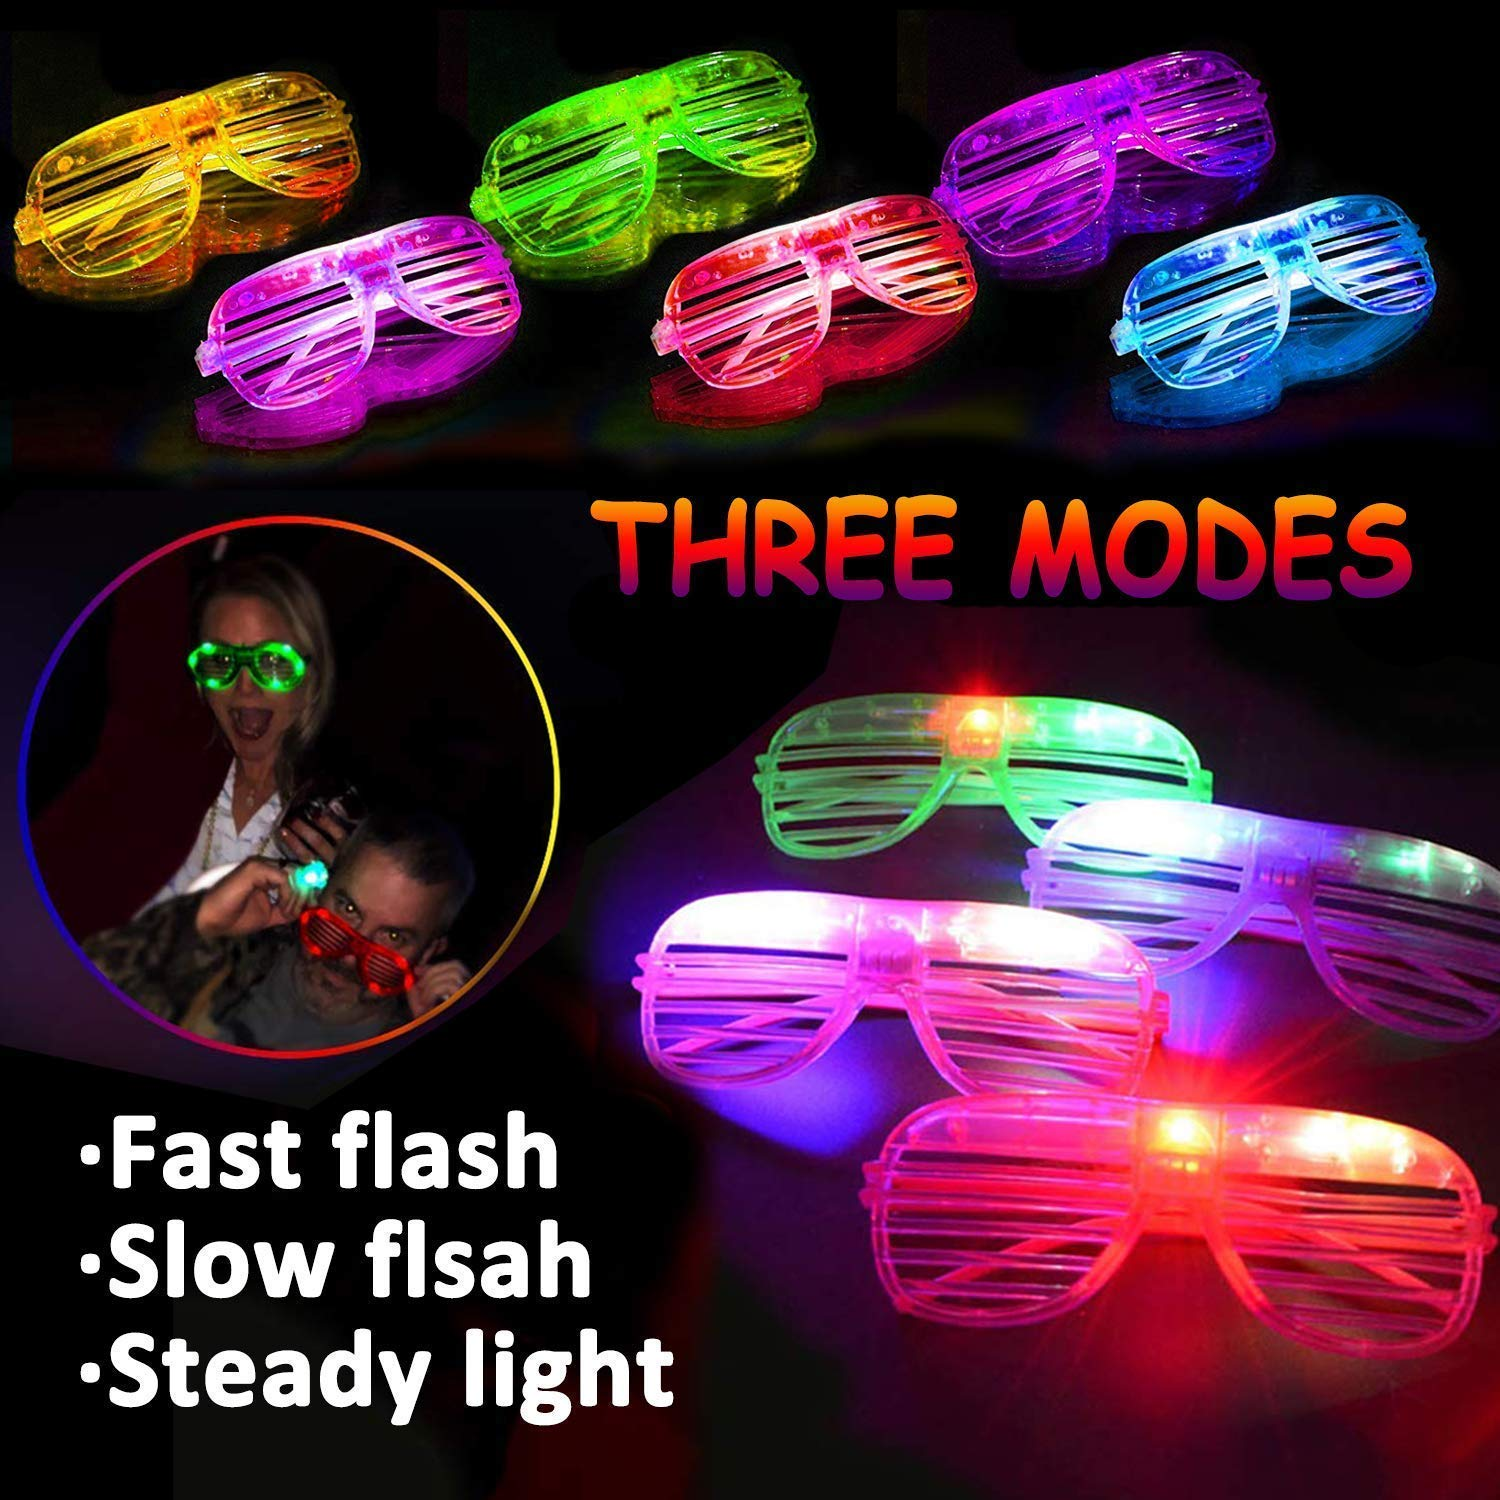 TURNMEON 20 Pack LED Glasses,5 Color Light Up Plastic Shutter Shades Glasses Shades Sunglasses for Adults Kids Glow in the Dark Party Favors Neon Party Supplies Independence Day Glow Toy by TURNMEON (Image #3)